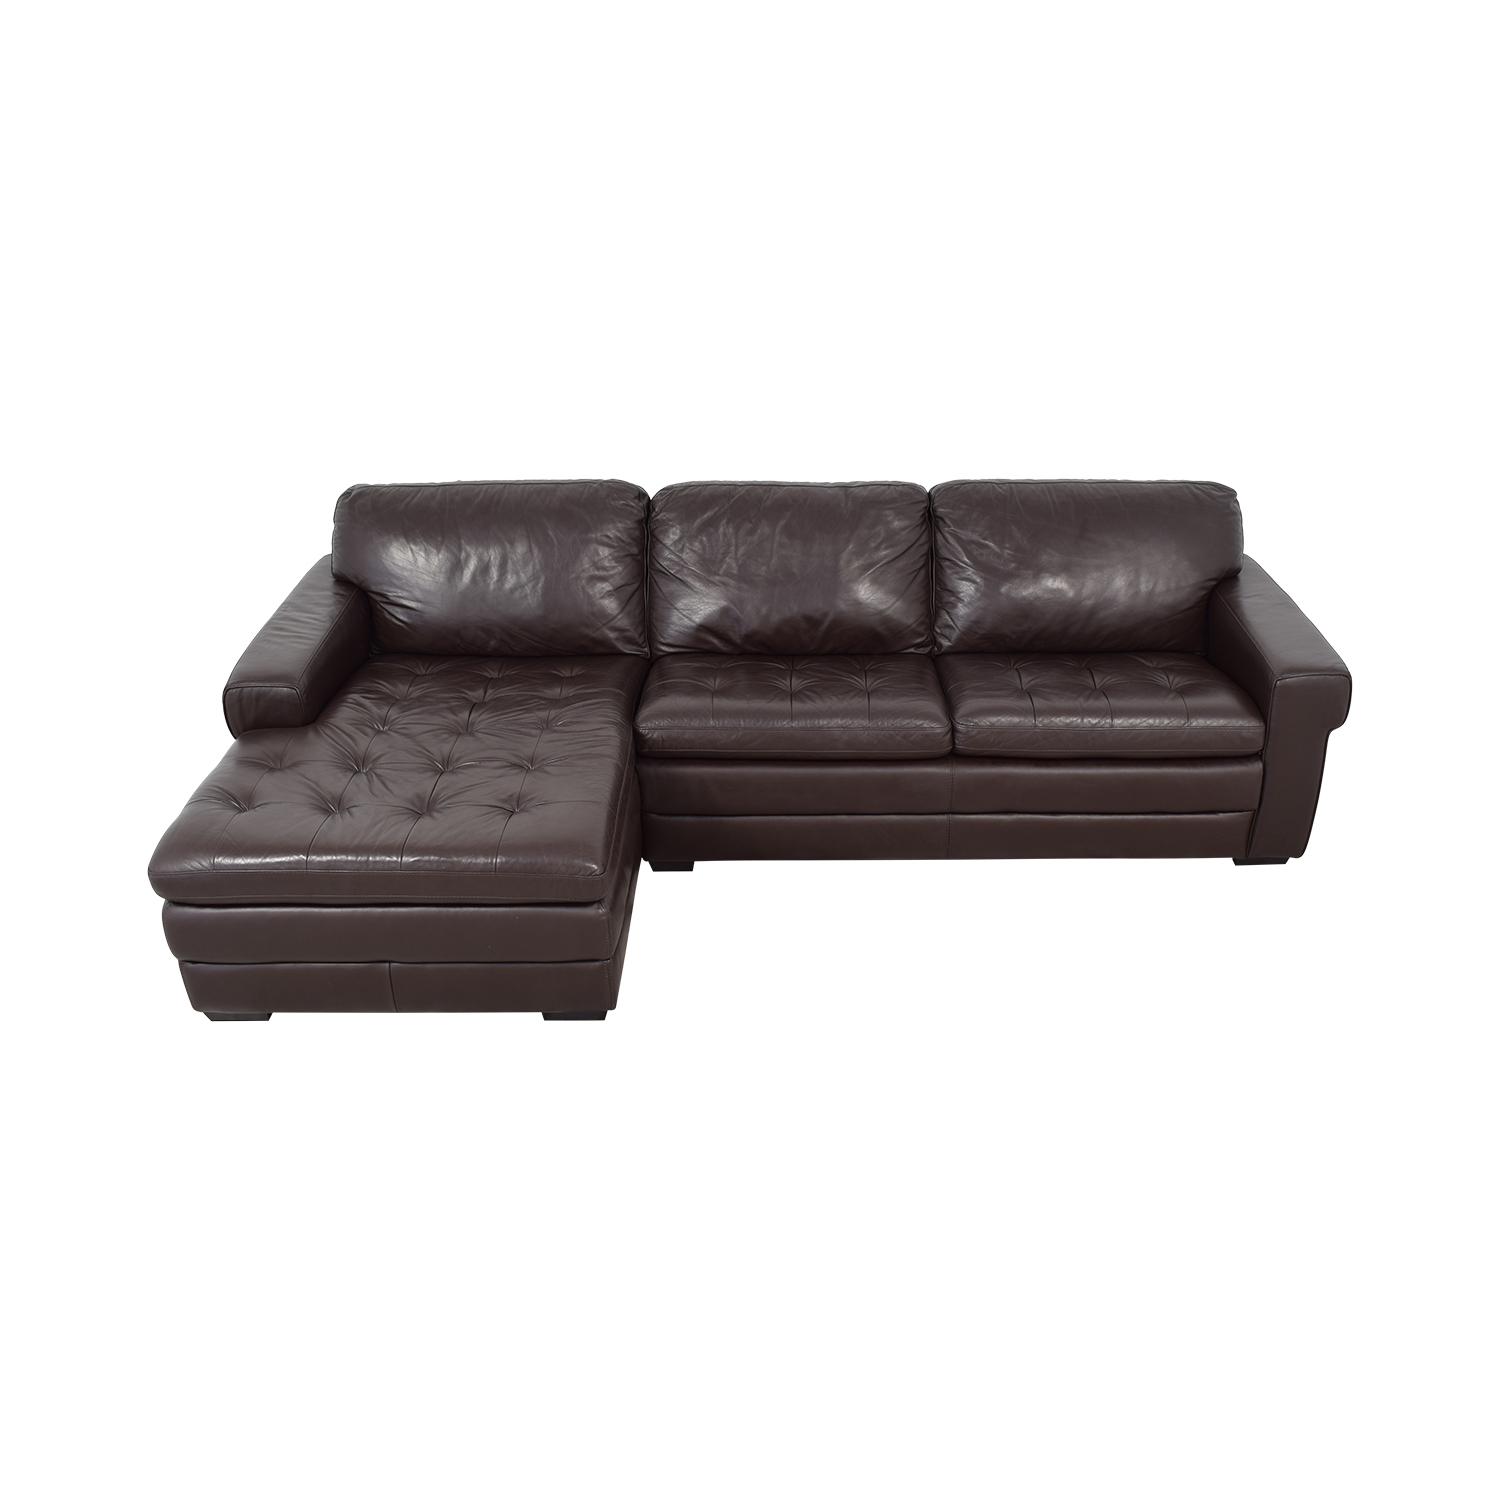 Havertys Havertys Chaise Sectional Sofa for sale